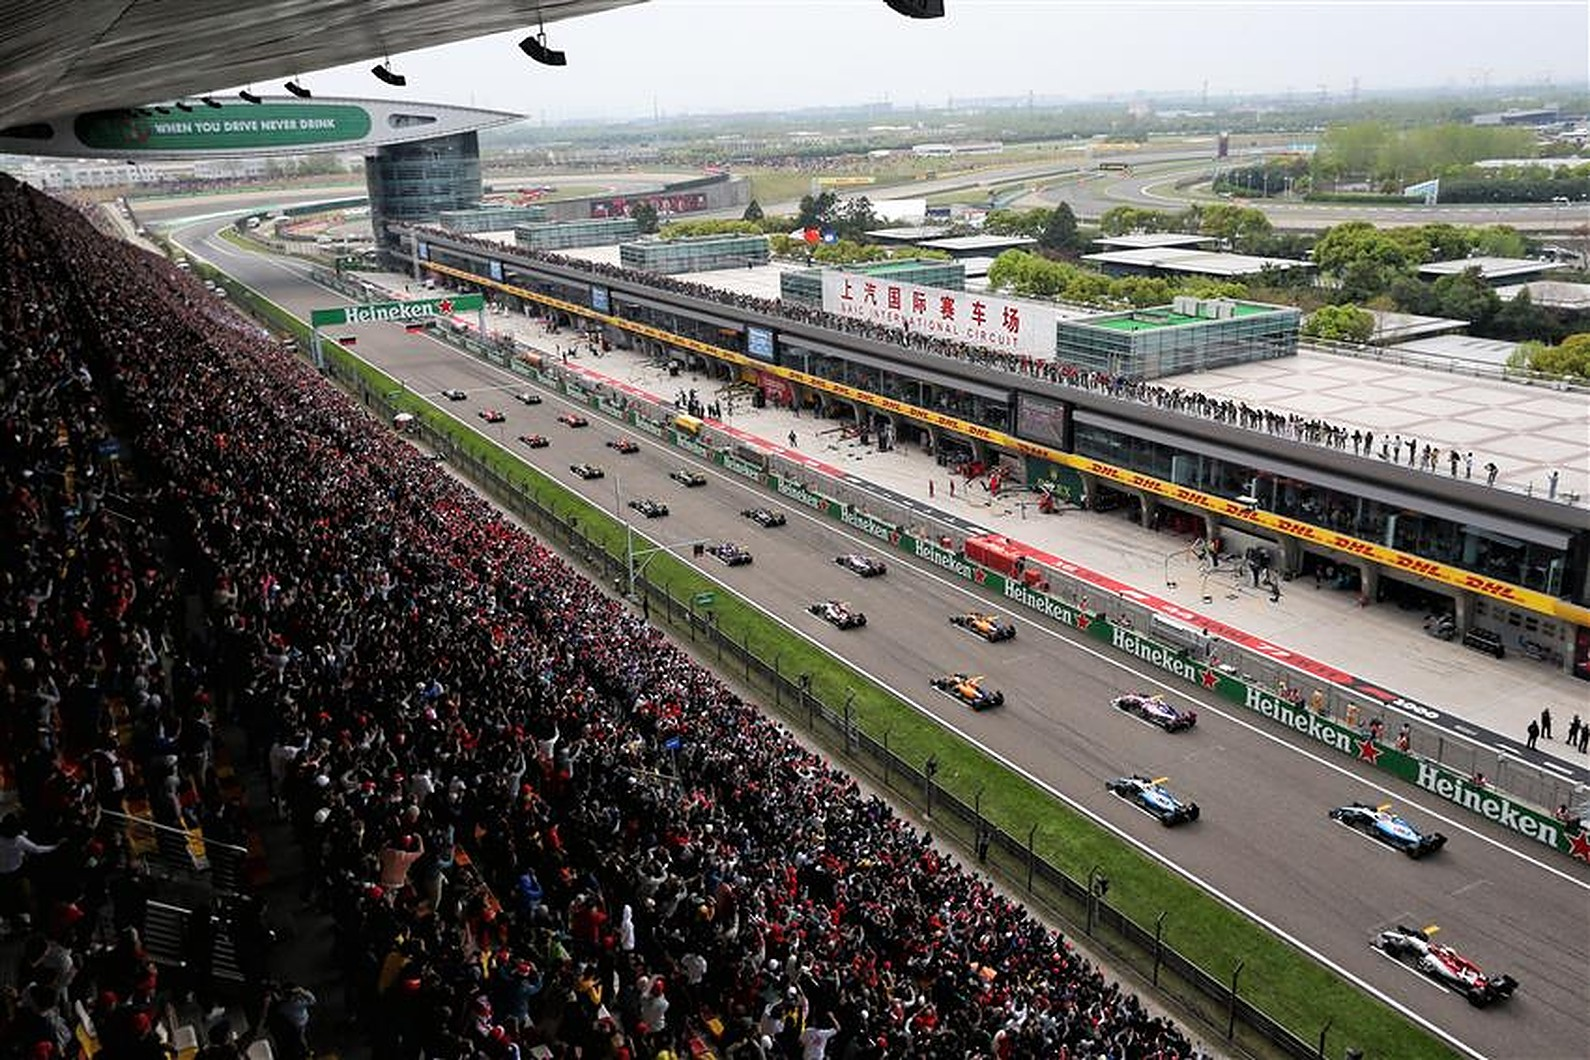 2021 Chinese F1 Grand Prix could be delayed as calendar facing changes - Formula1news.co.uk